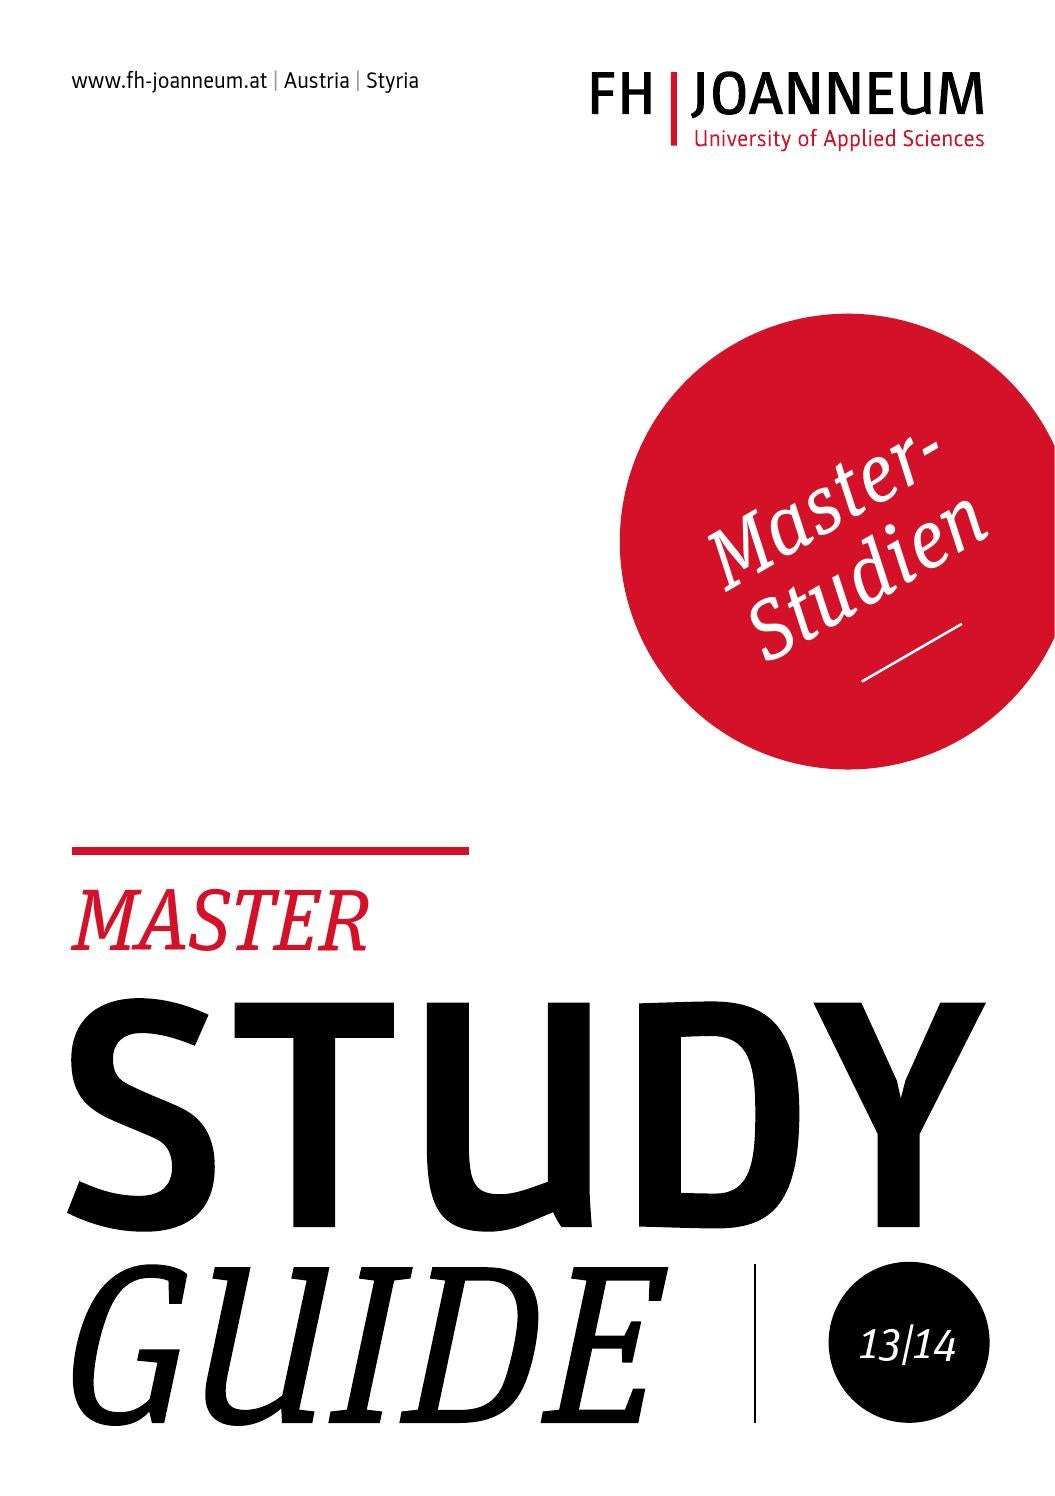 Study Guide - Master by FH JOANNEUM - University of Applied Sciences ...